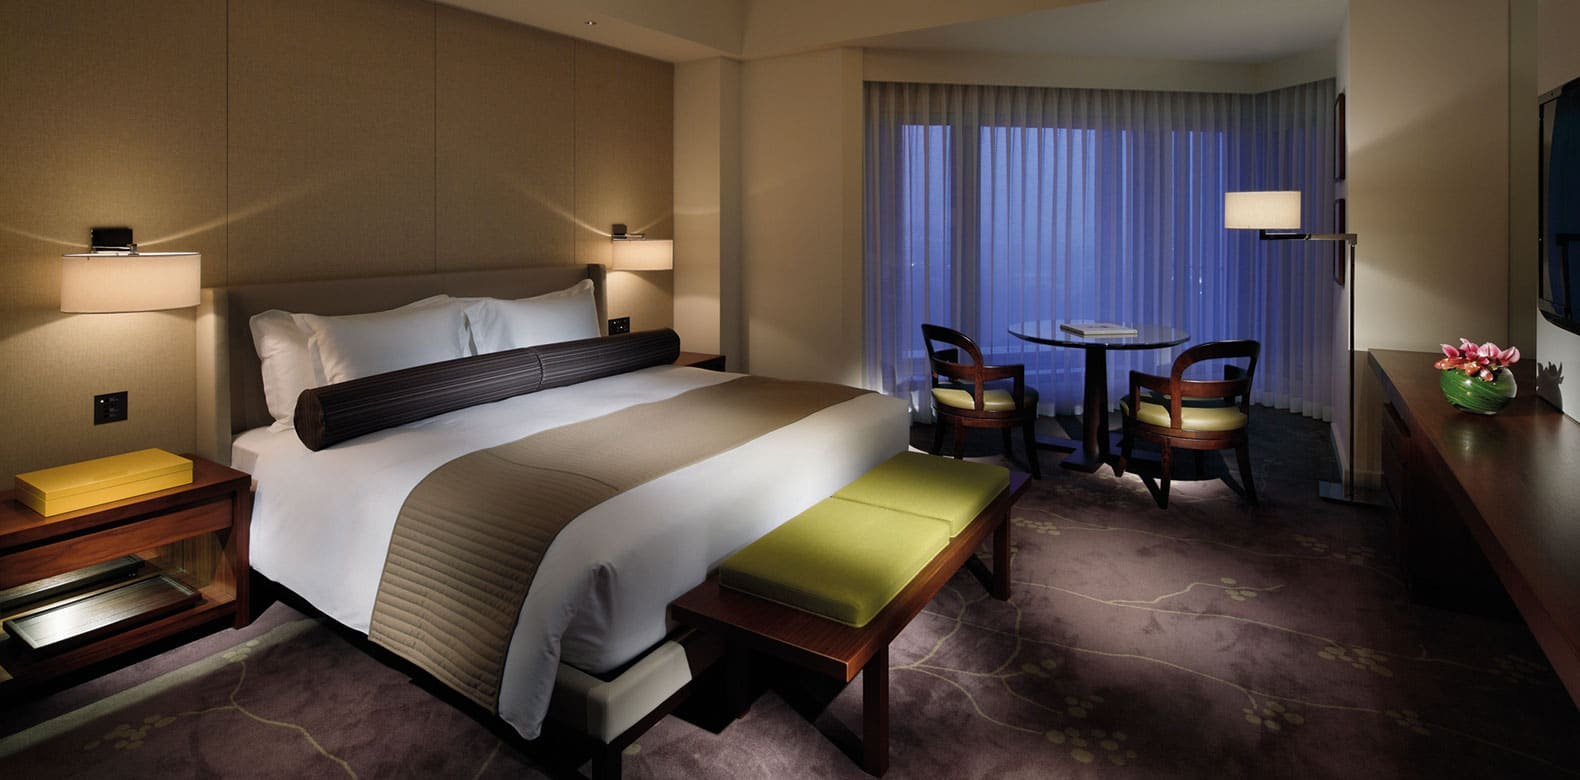 Tokyo Palace Hotel Room Rates